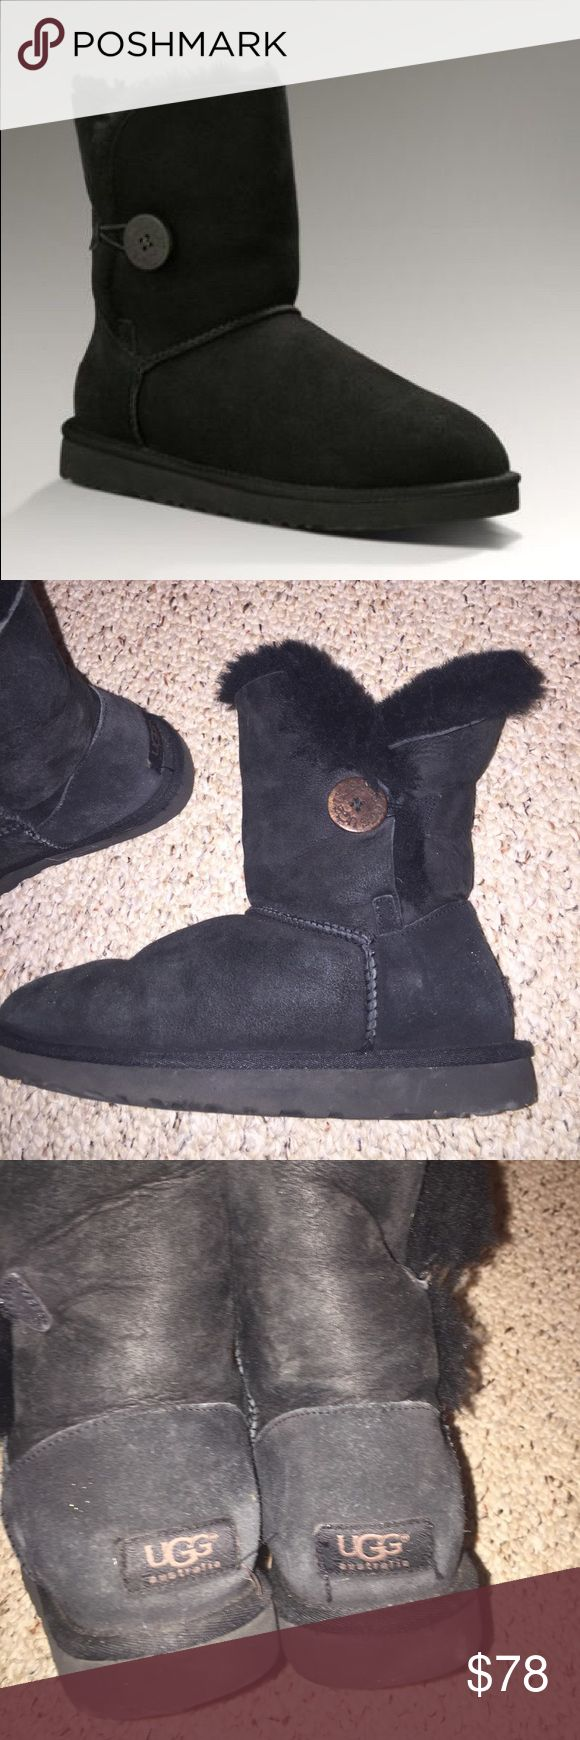 Black Uggs Black short uggs w button! Size 8 in great condition. Make me an offer! UGG Shoes Ankle Boots & Booties